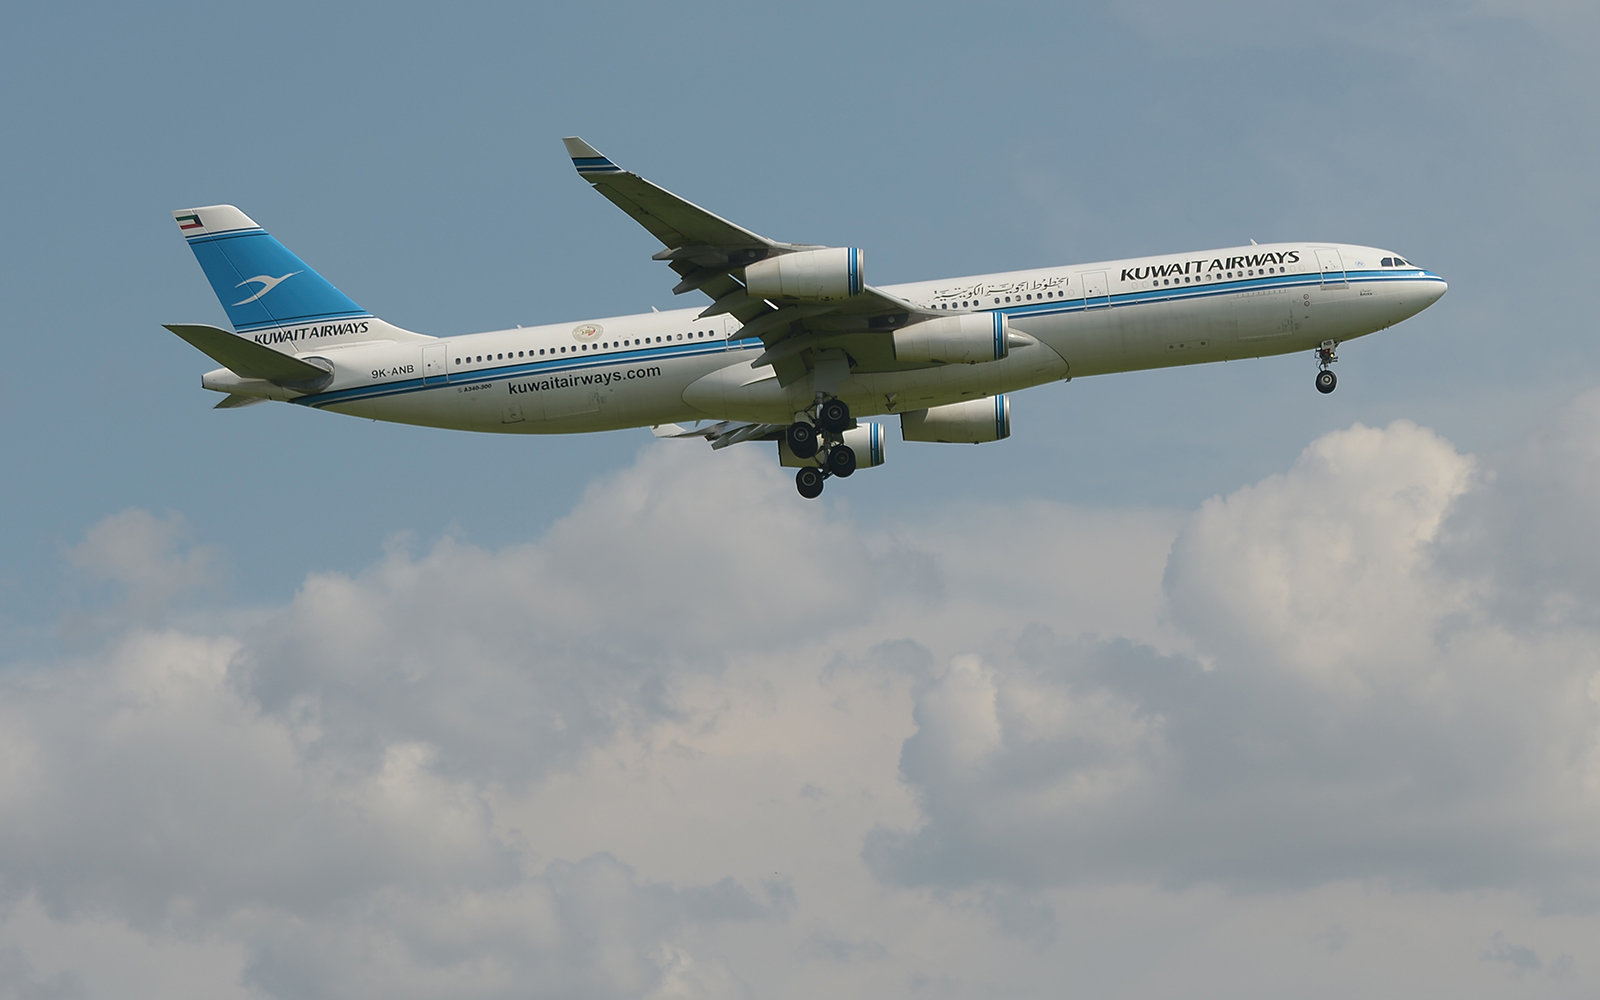 Kuwait airways plane